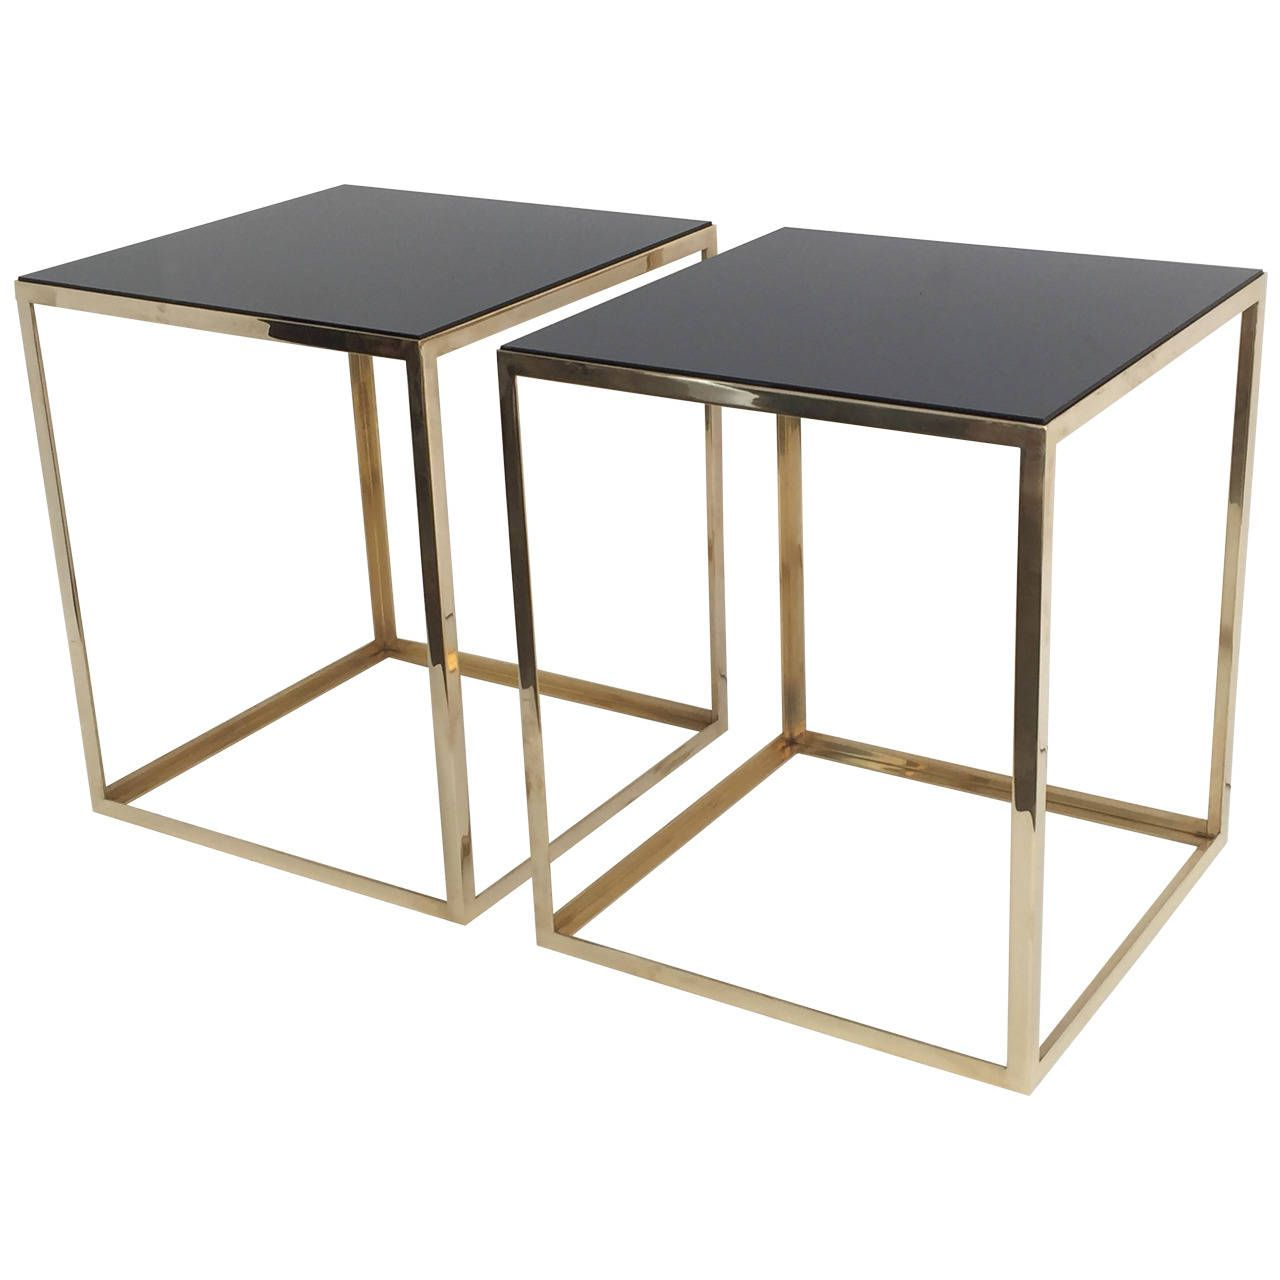 Pair Of Brass And Black Glass Cube Tables Glass Cube Cube Table Table [ 1280 x 1280 Pixel ]